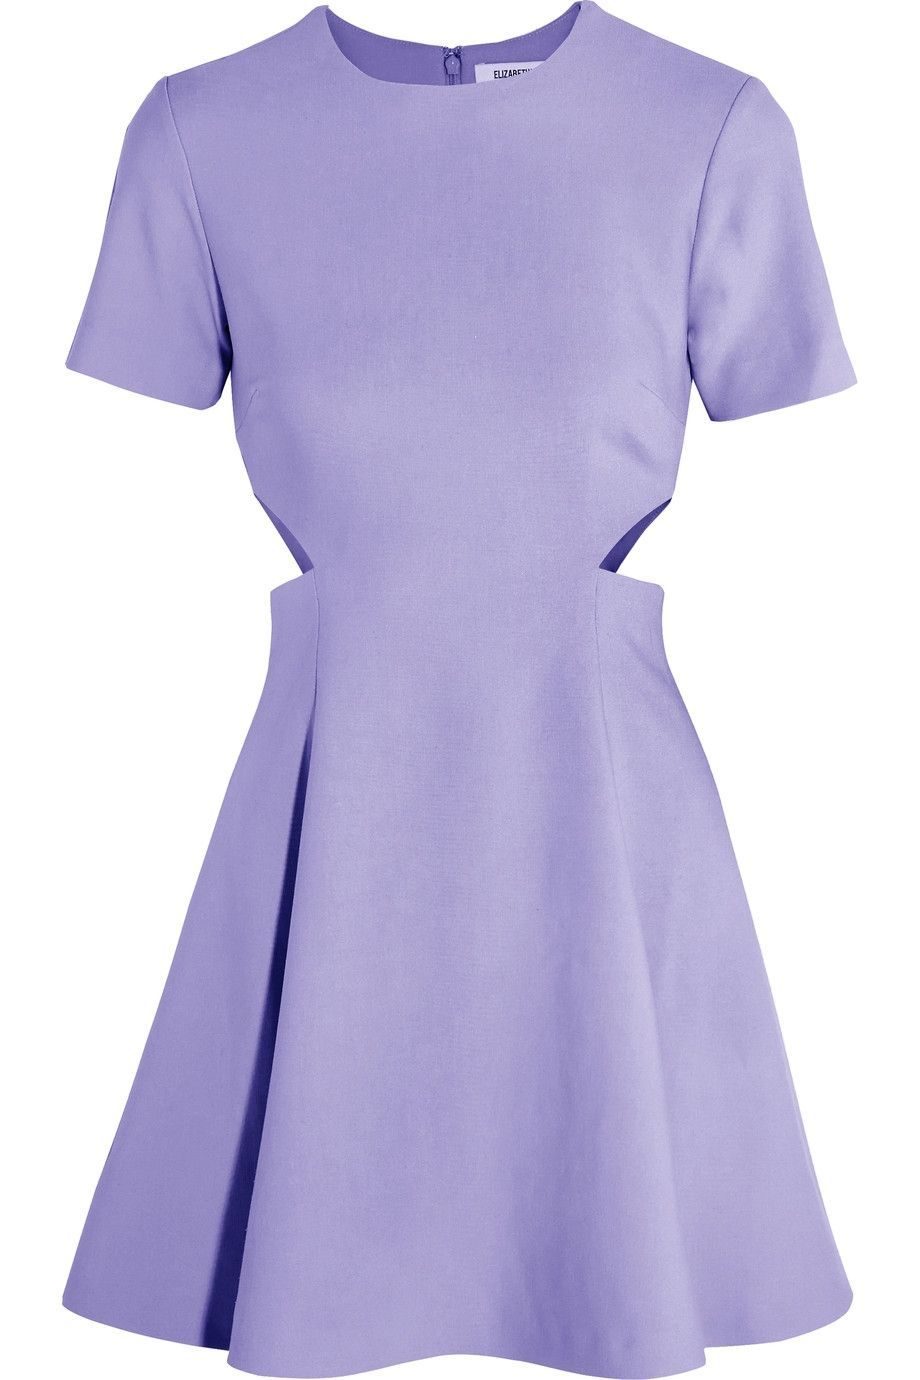 Kate Middleton's Lavender Dress Will Save the World – Mixed